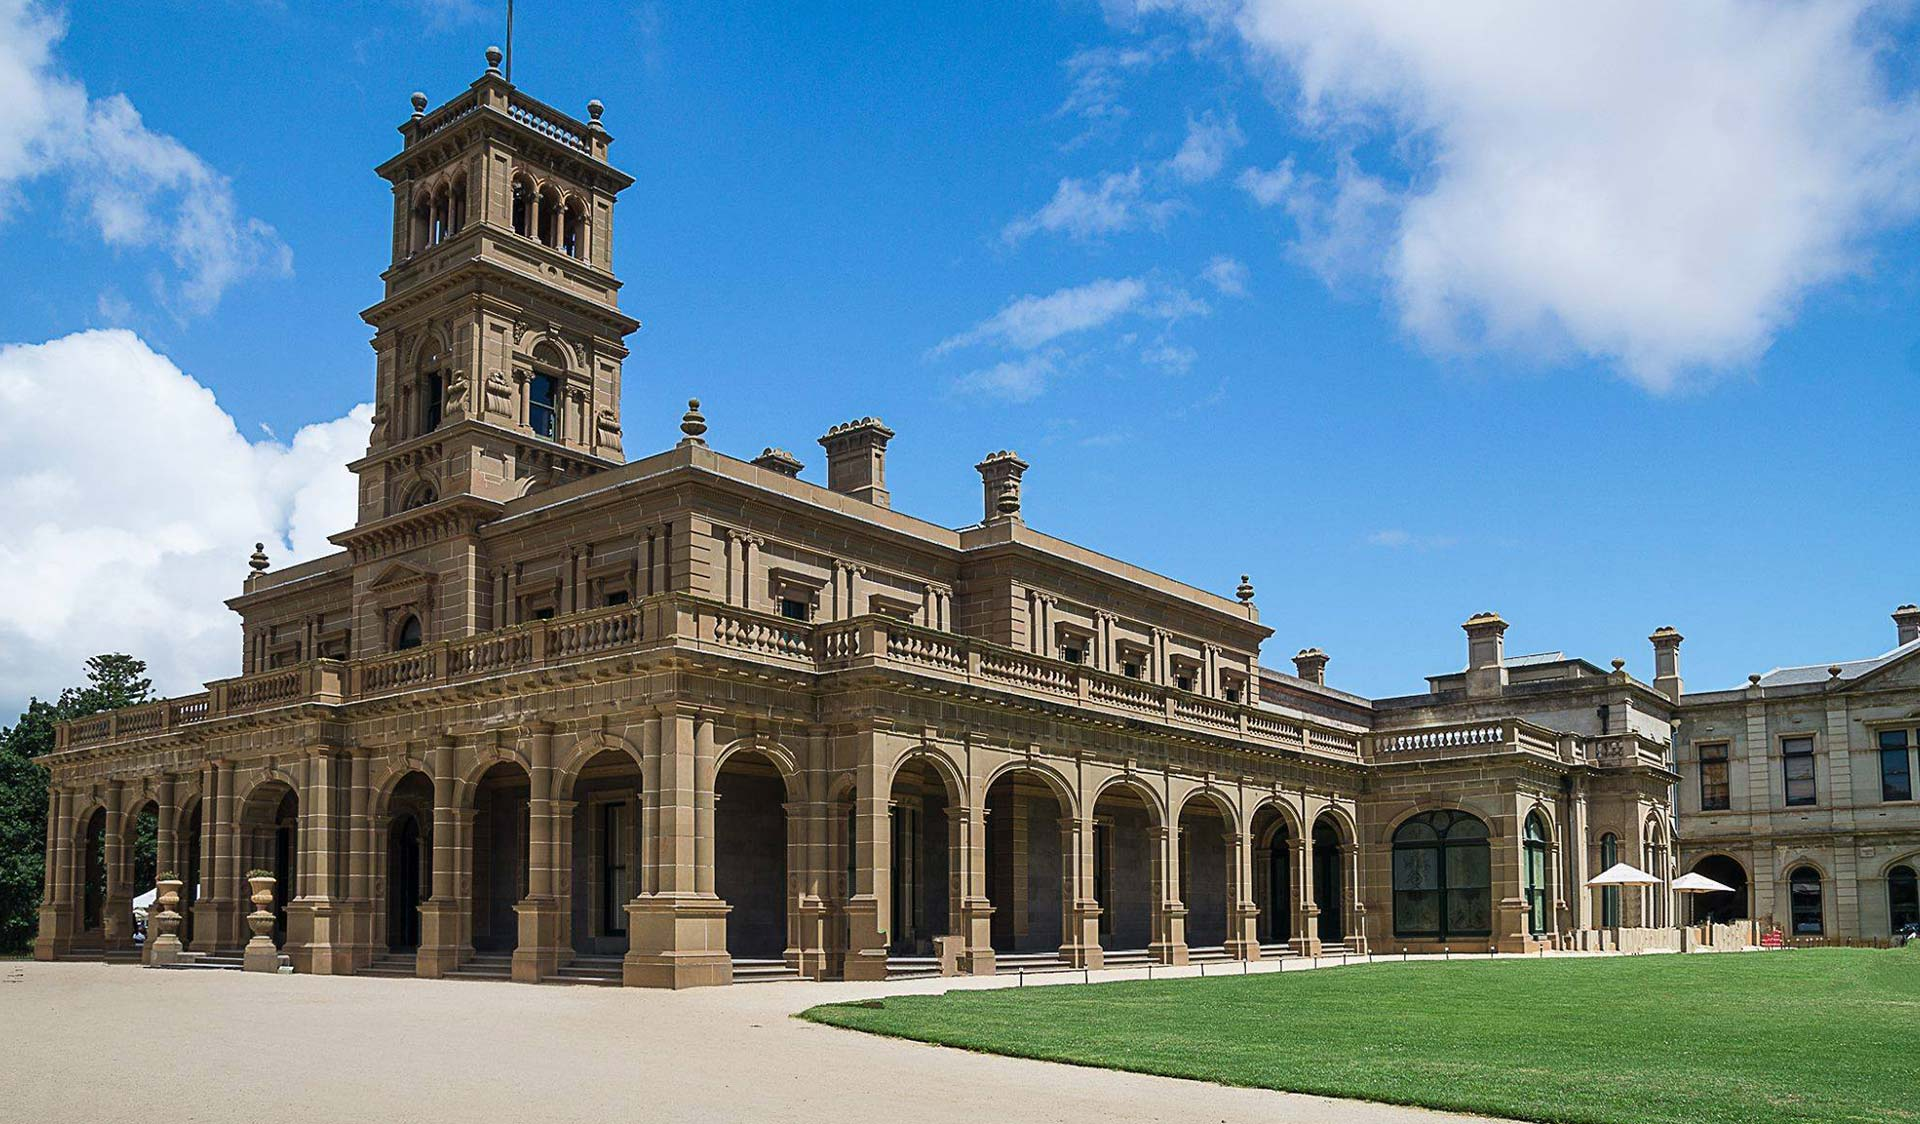 The facade of the historic Werribee Park Mansion.